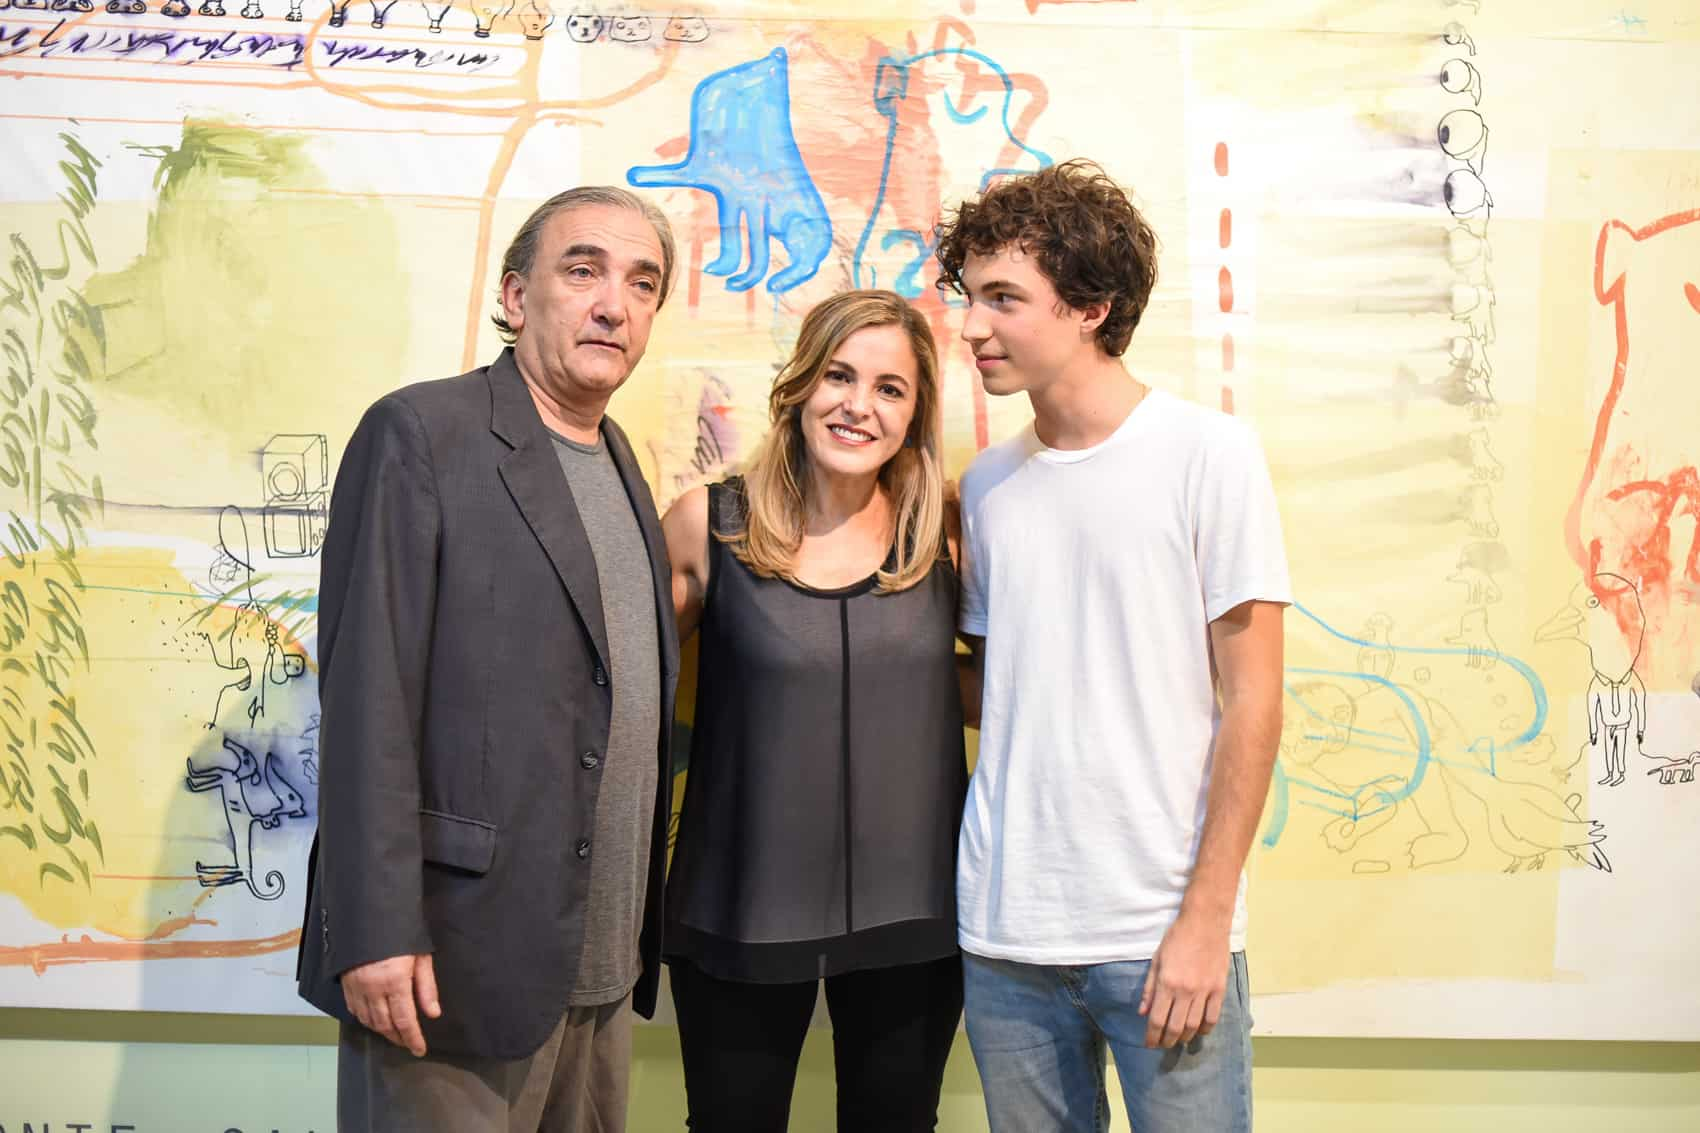 Consolidated artist Guillermo Conte (left) with Tandem's organizer Karen Clachar (center) and emerging artist Costa Rican artist Julián Gallese (right), in front of a piece made by Conte and Gallese.